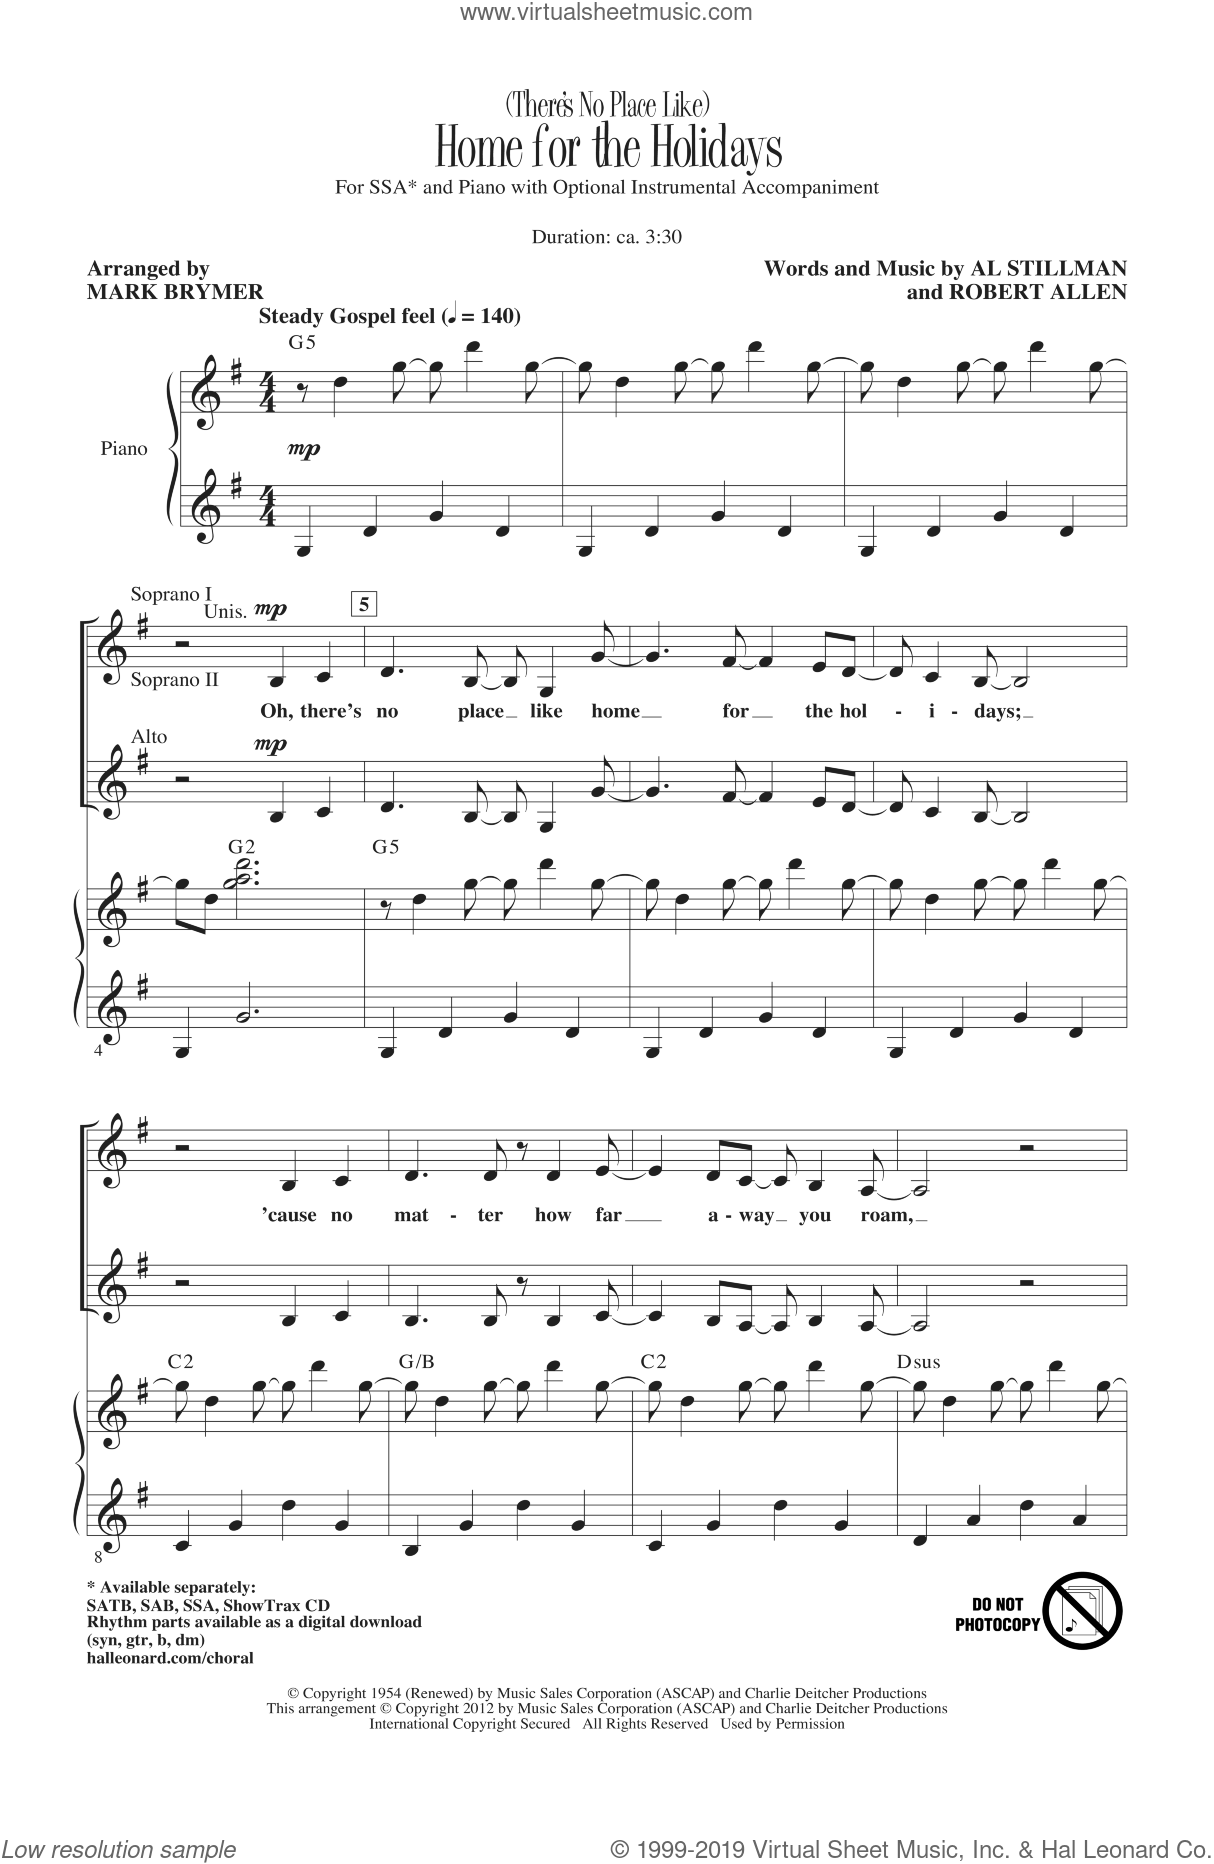 (There's No Place Like) Home For The Holidays sheet music for choir (soprano voice, alto voice, choir) by Mark Brymer, Al Stillman, Perry Como and Robert Allen. Score Image Preview.